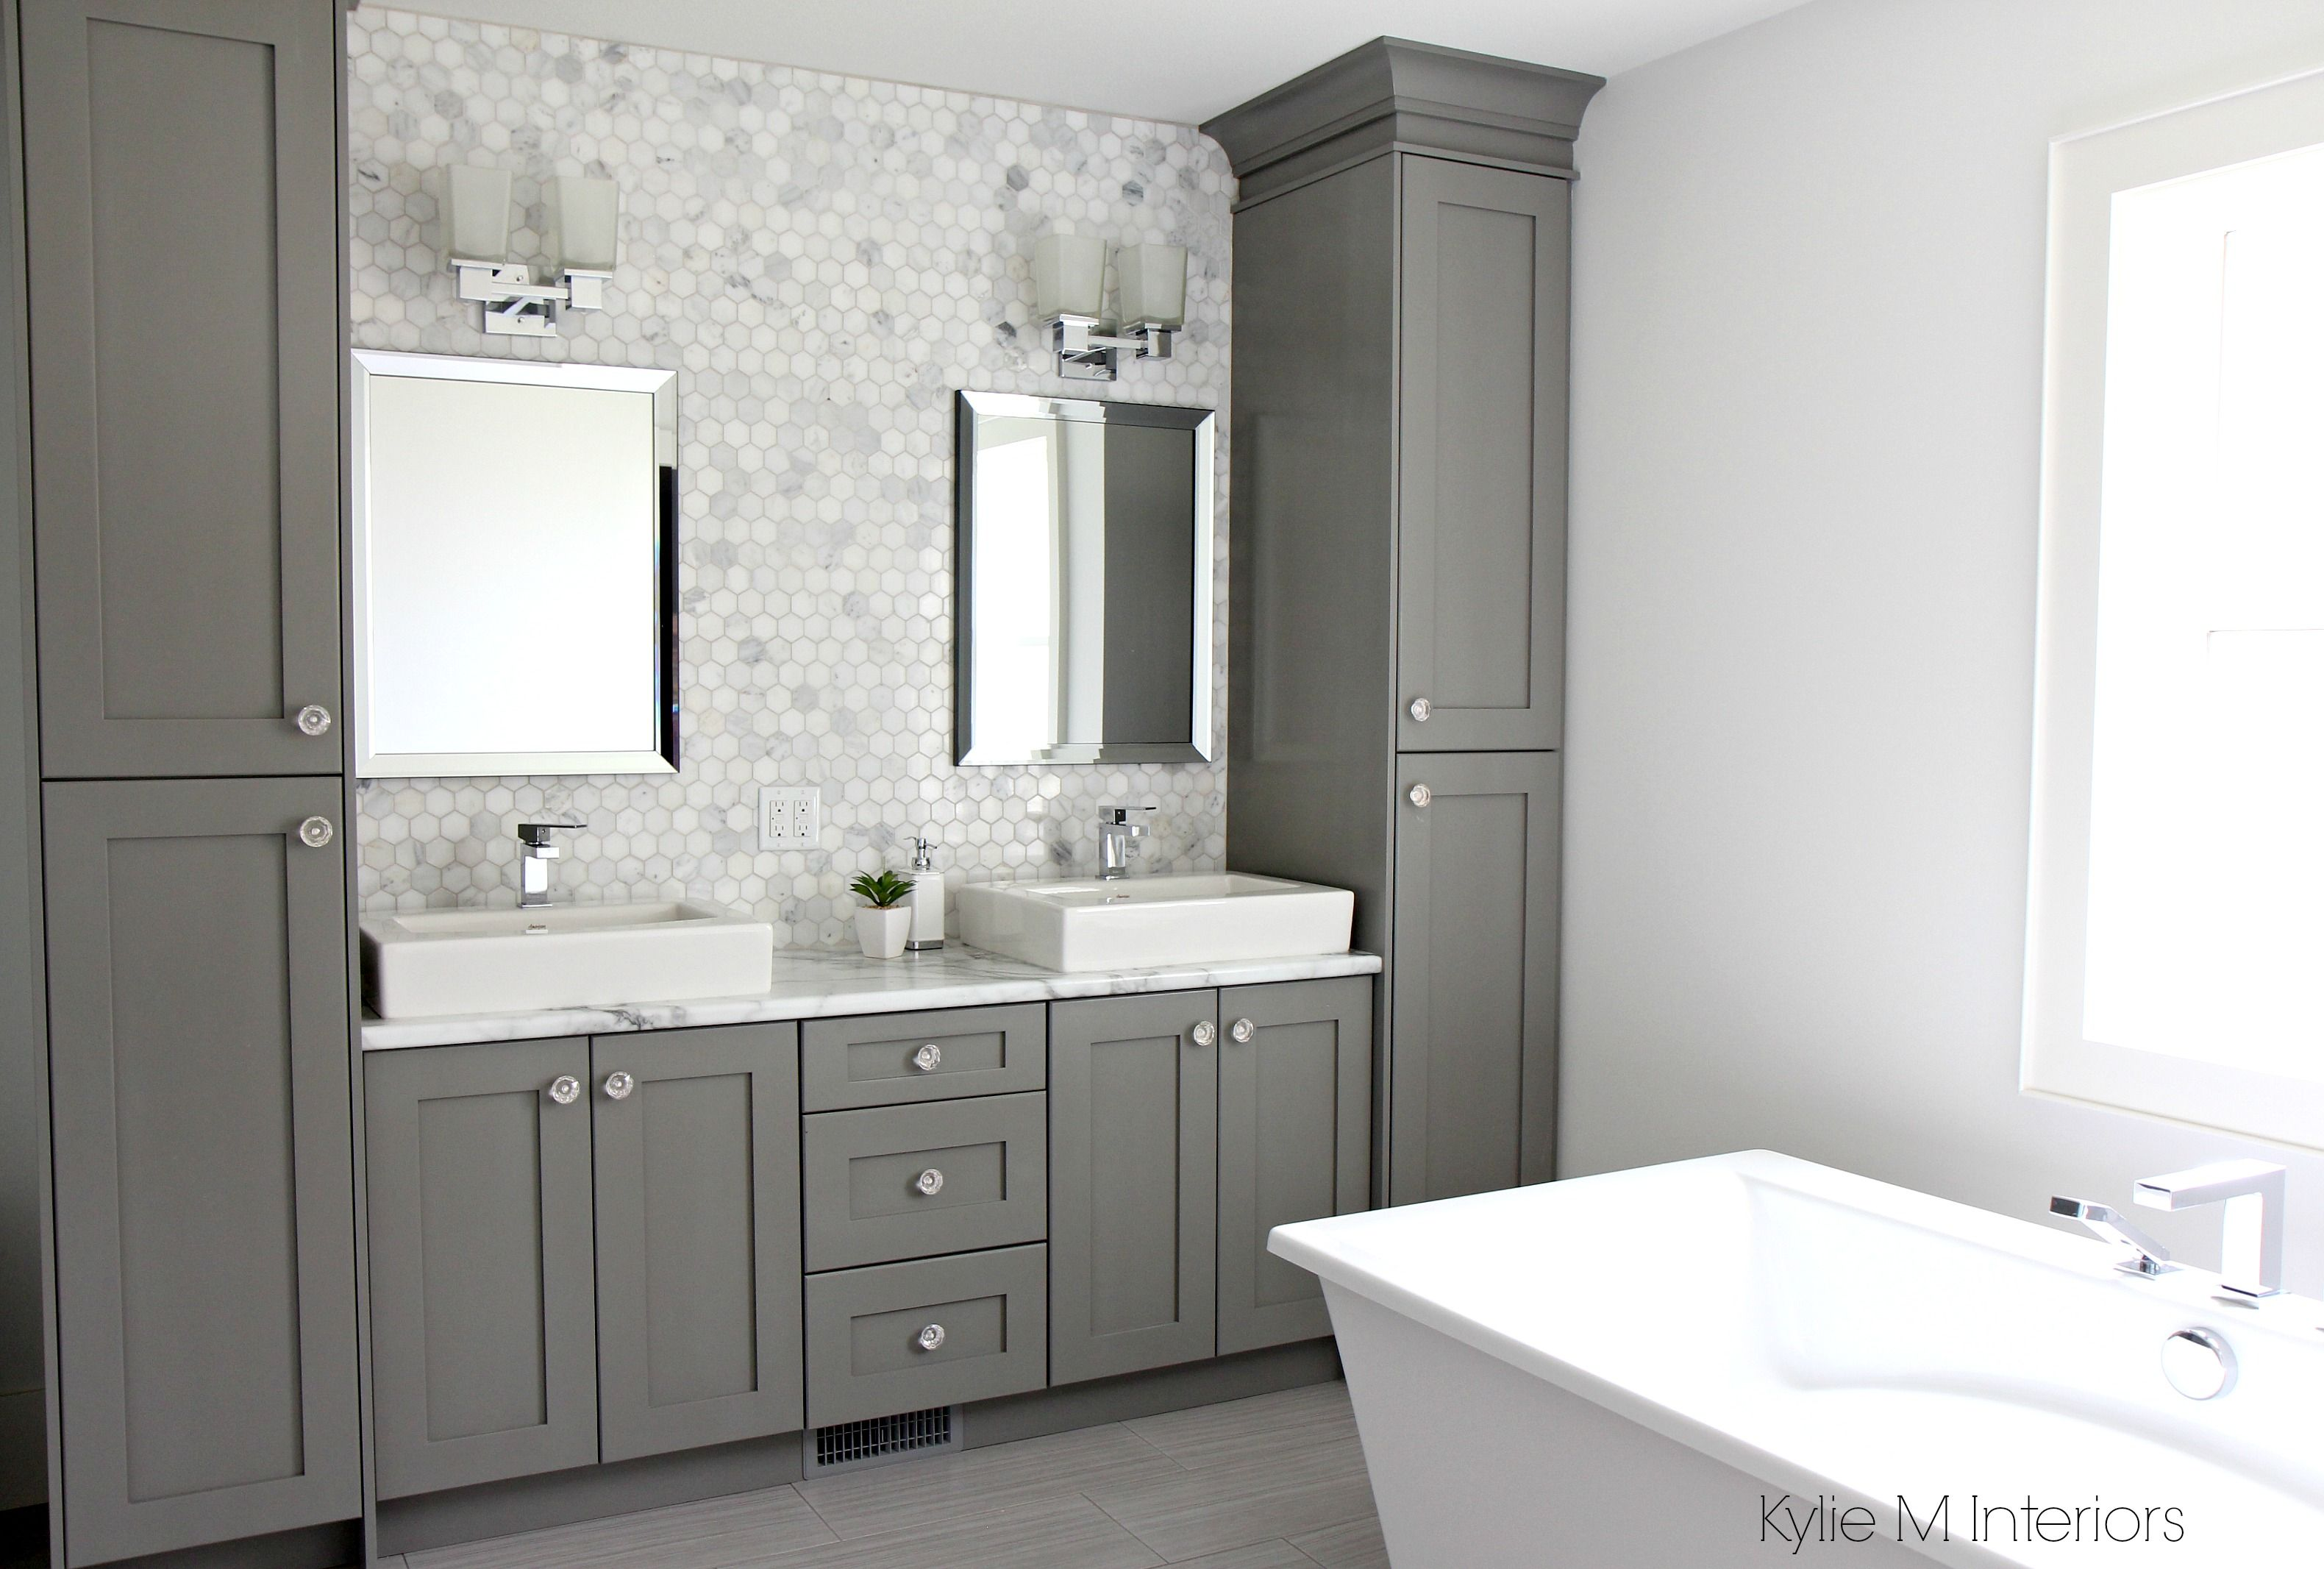 Double Vanity With Storage Towers Painted Chelsea Gray Free Standing Tub Marble Mosaic Bathroom Vanity Storage Bathroom Vanity Designs Bathroom Storage Tower